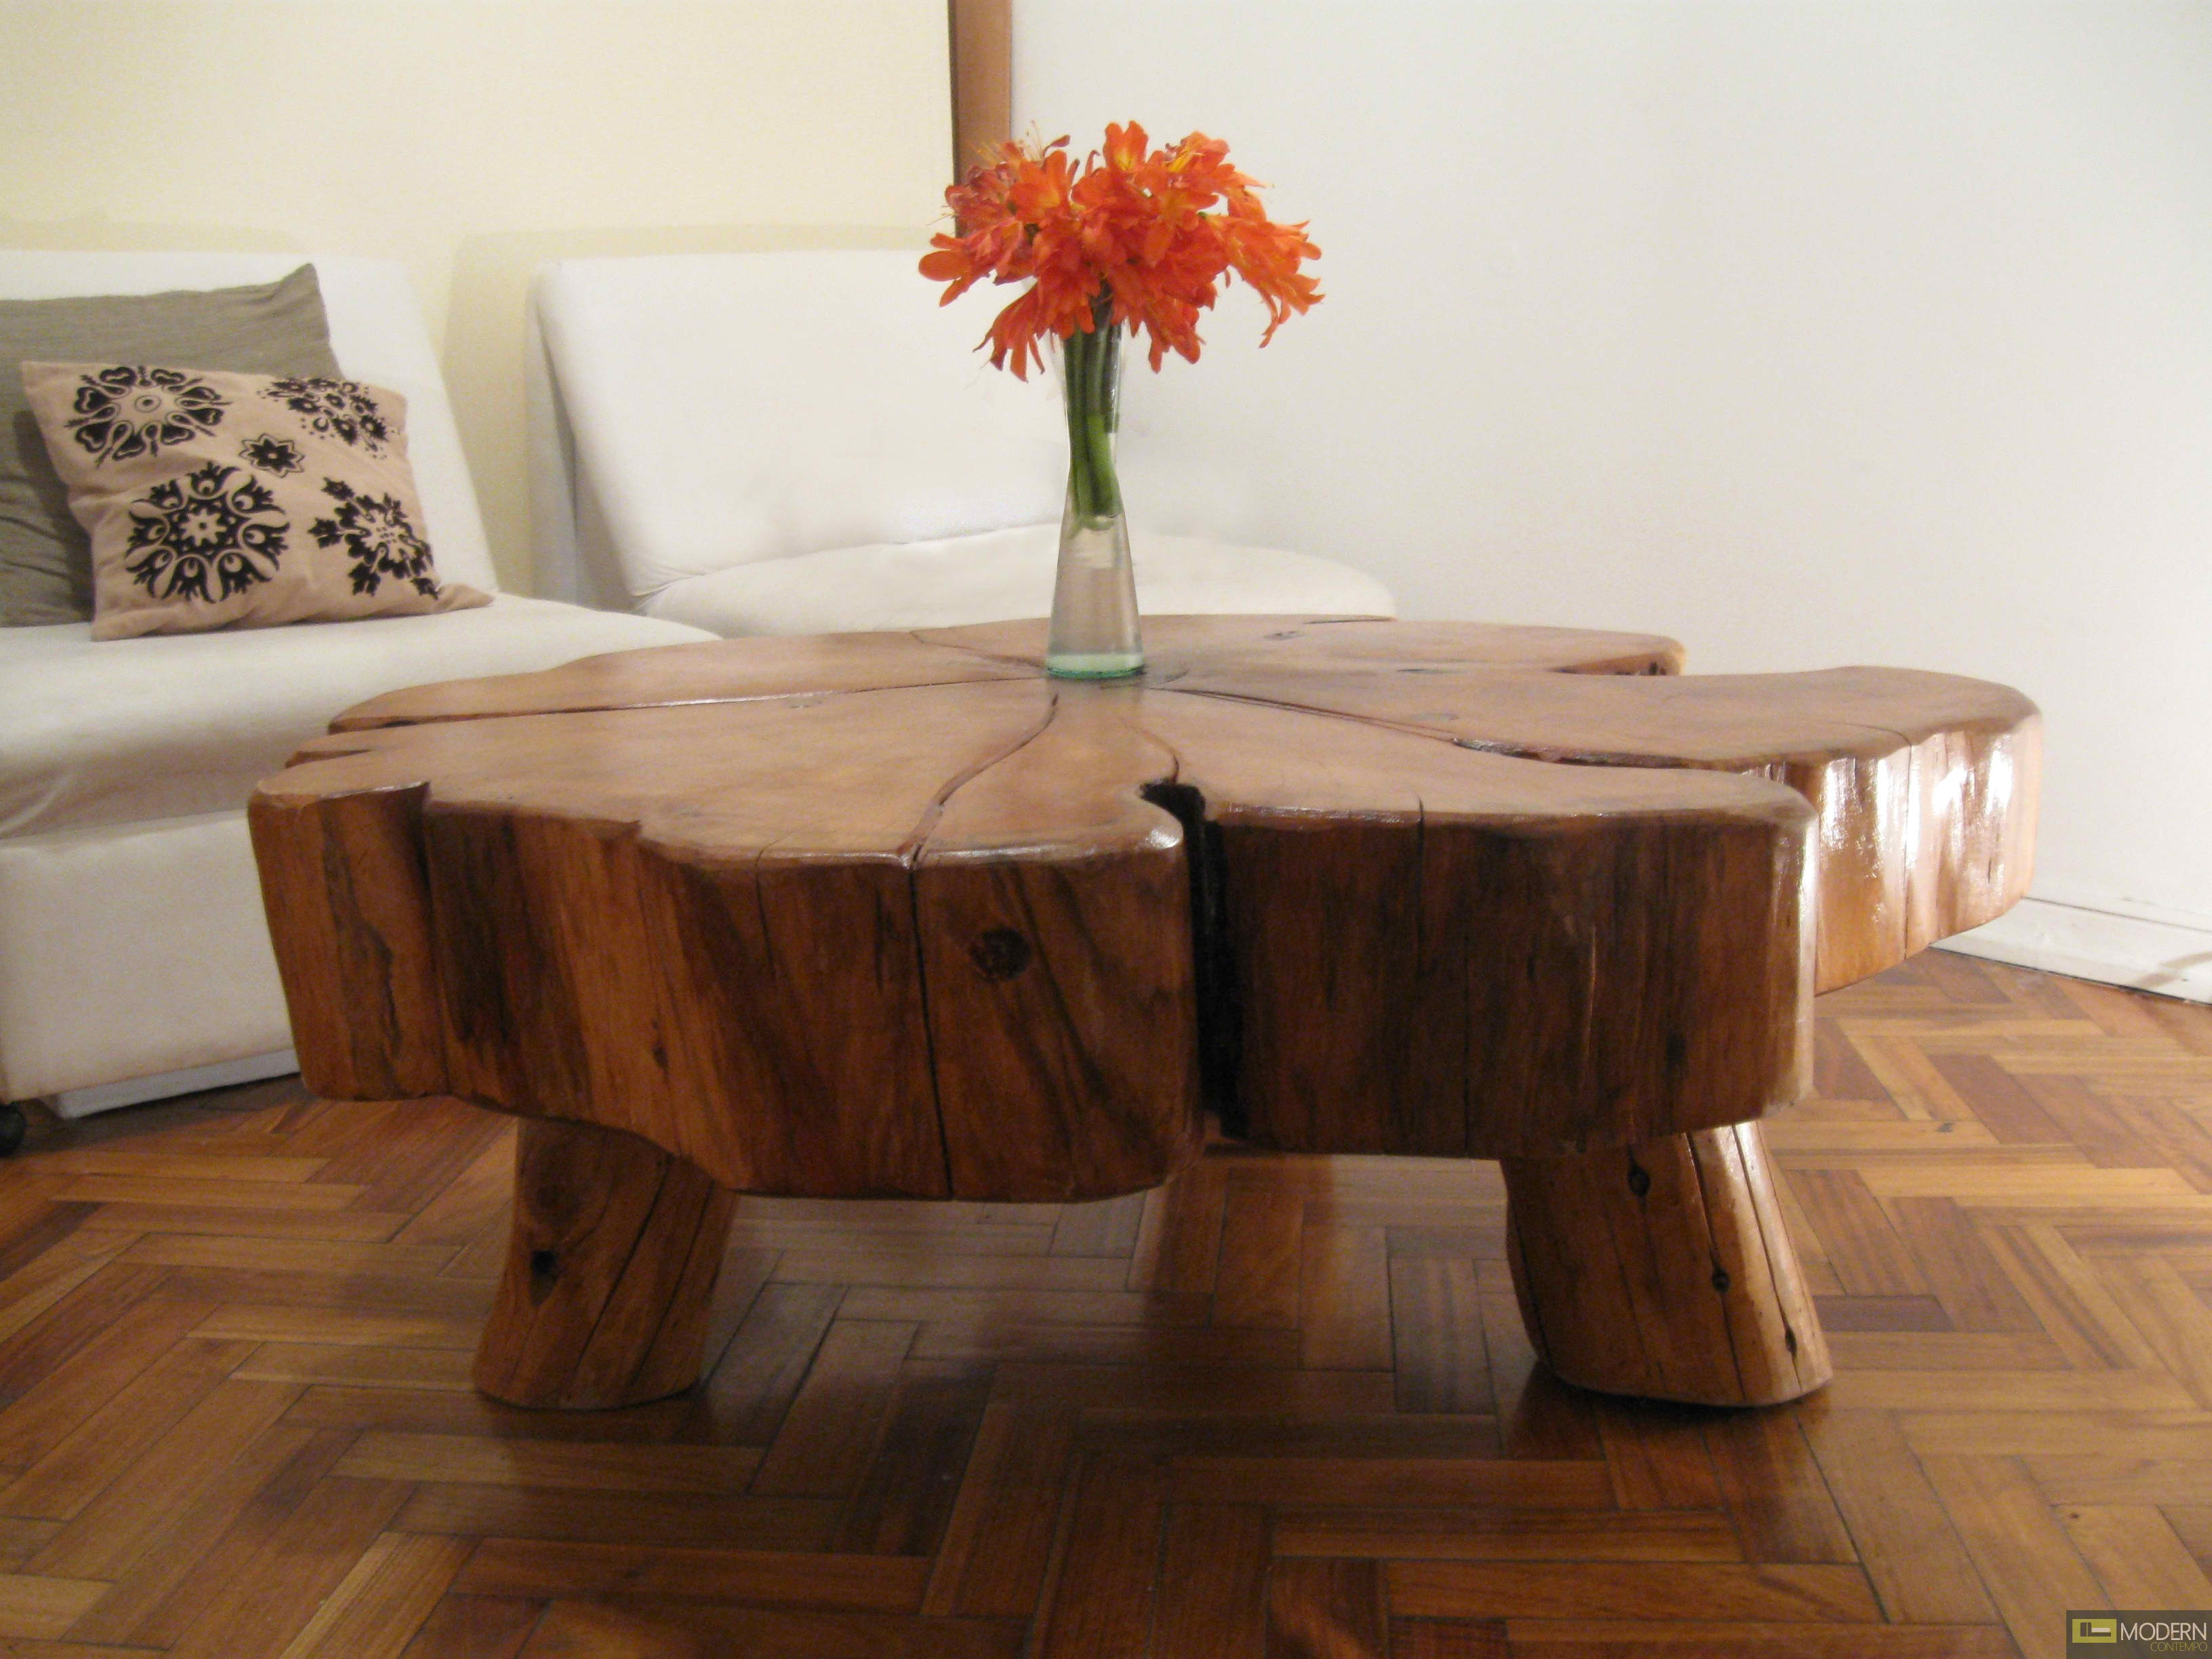 3 piece table set for living room oversized round swivel chairs patagonia rustic grand coffee